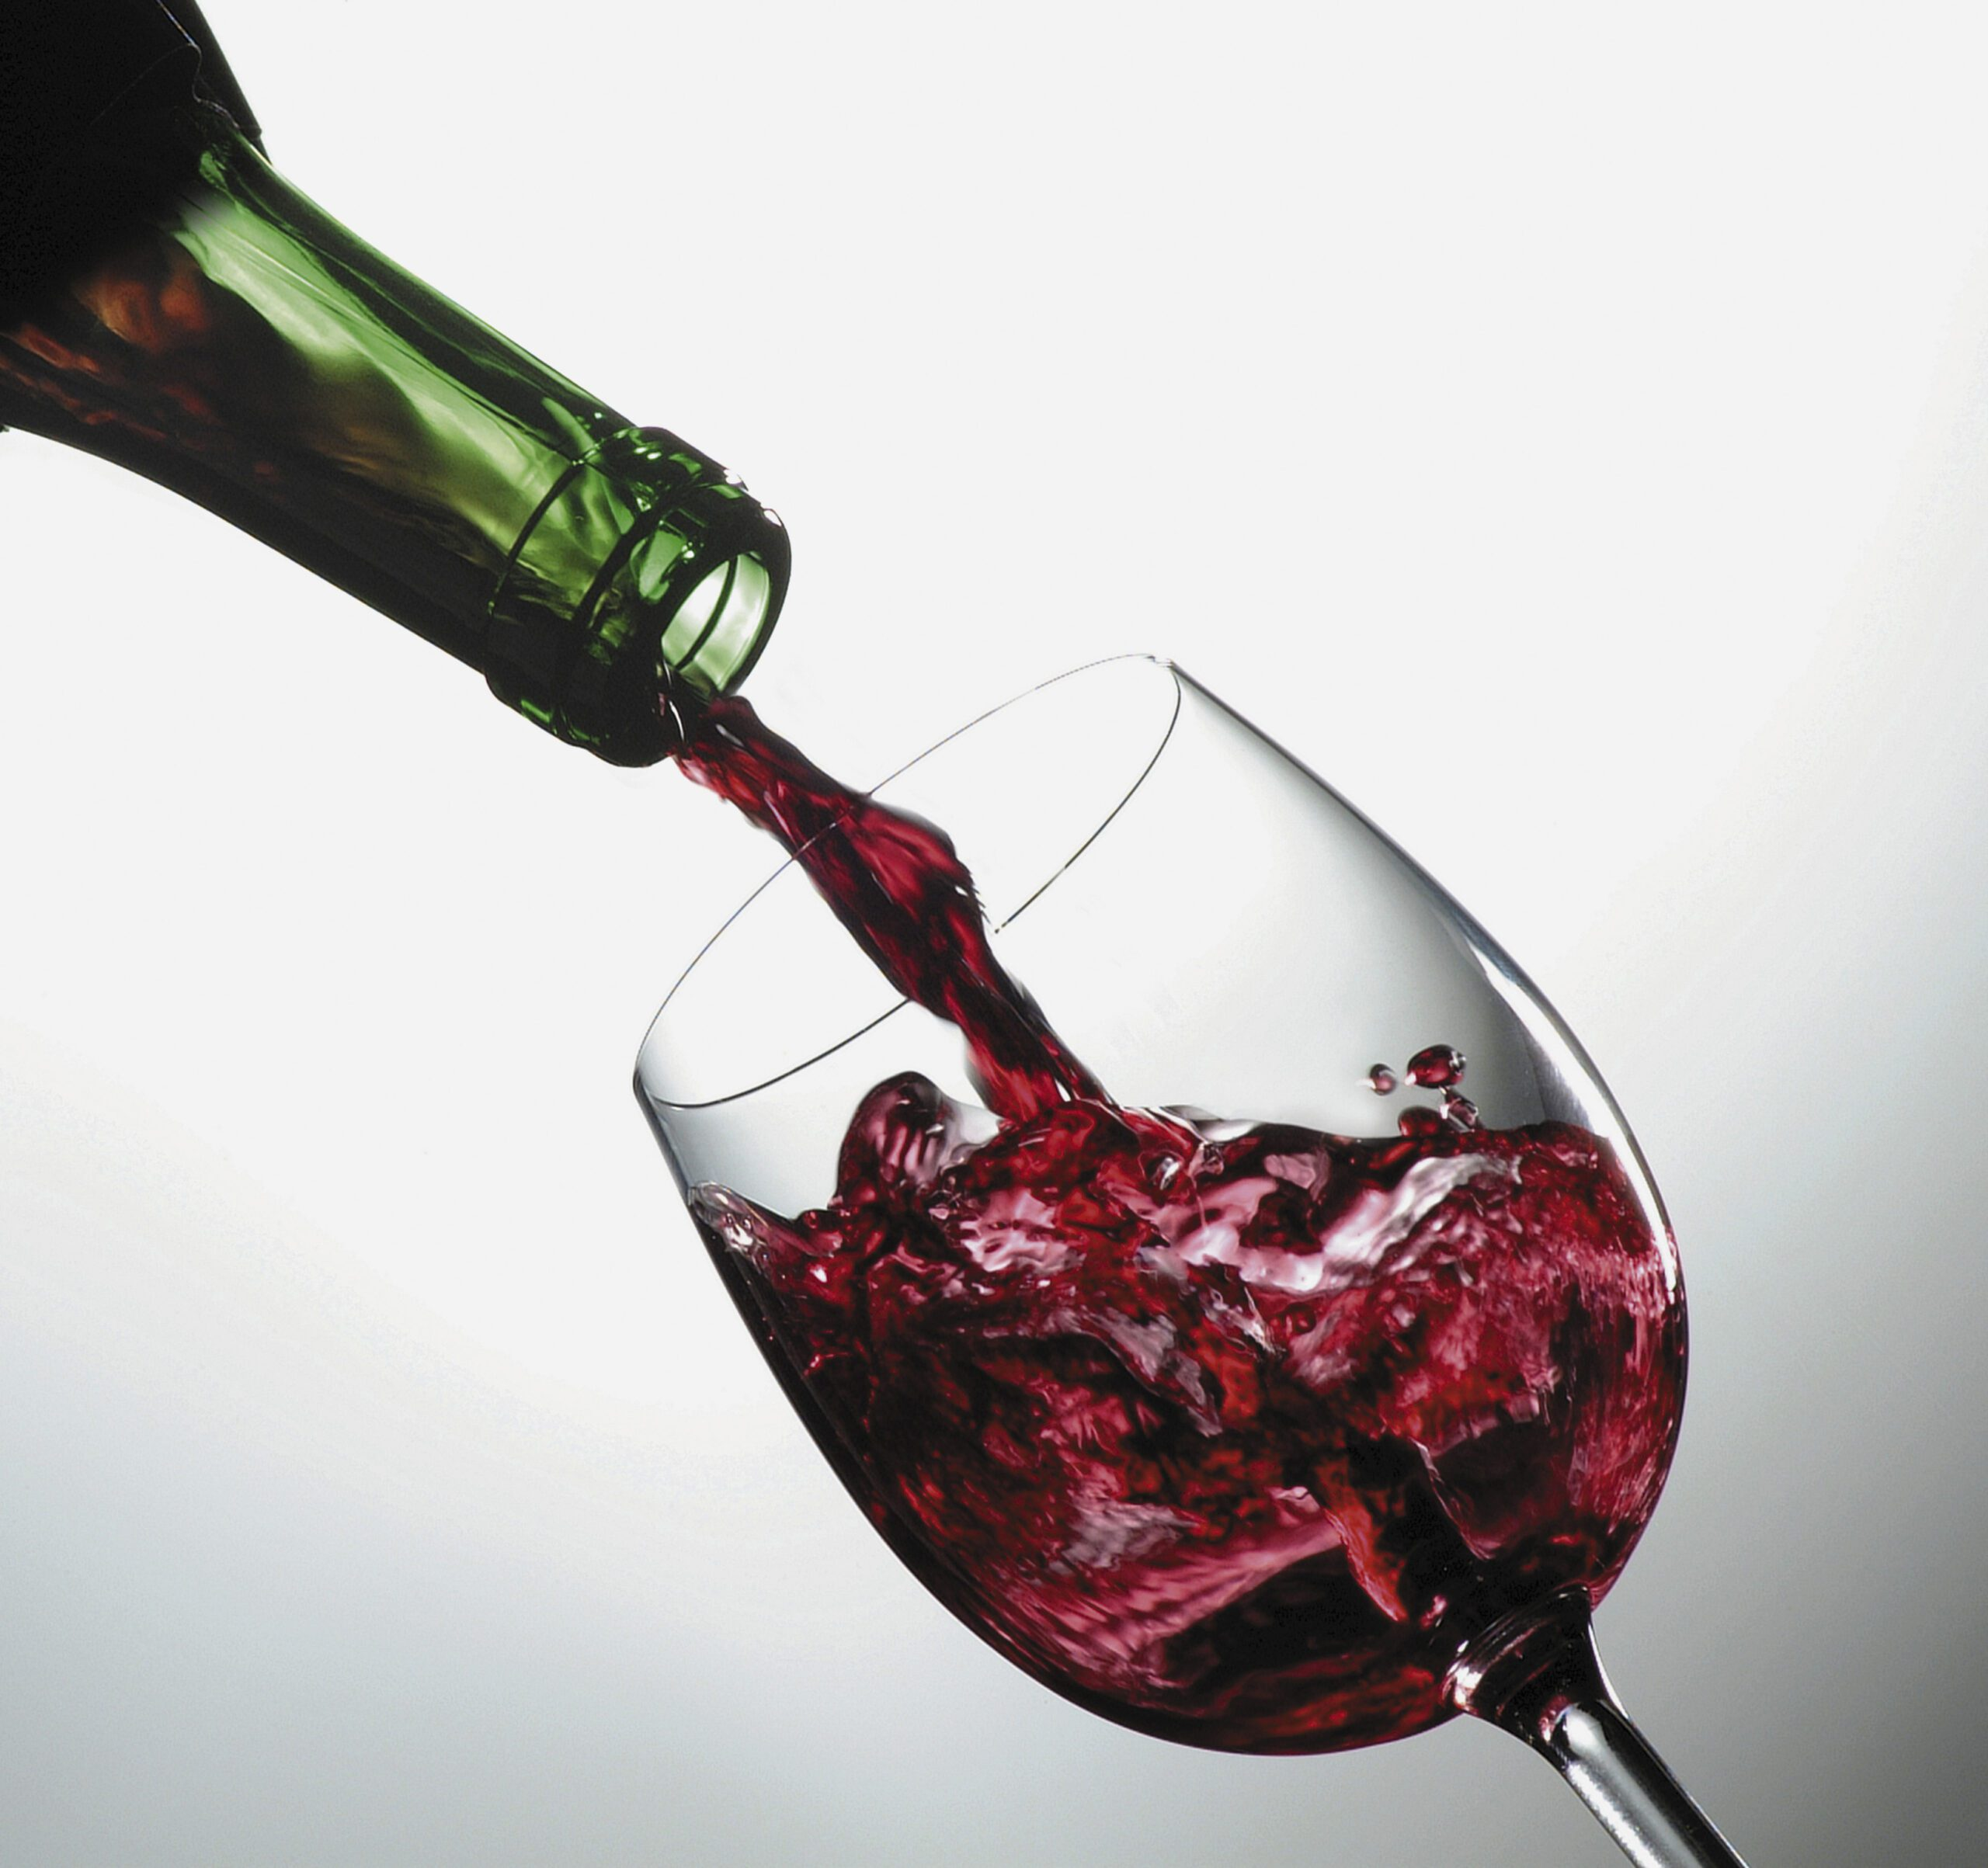 Close-up of red wine being poured from a bottle into a glass